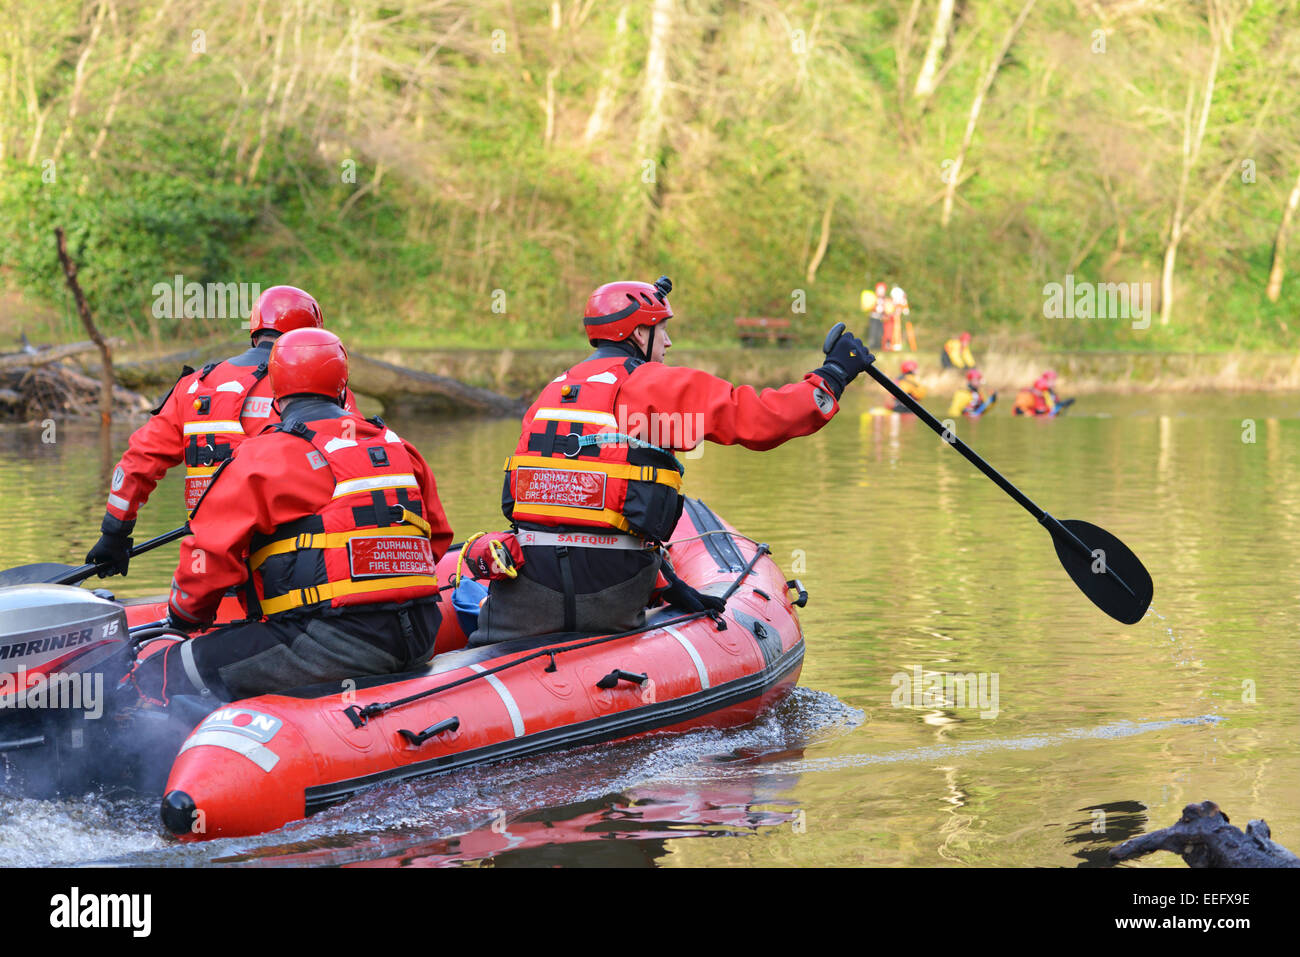 Volunteers from Teesdale and Weardale search & mountain rescue team search the river Wear for a missing person. - Stock Image